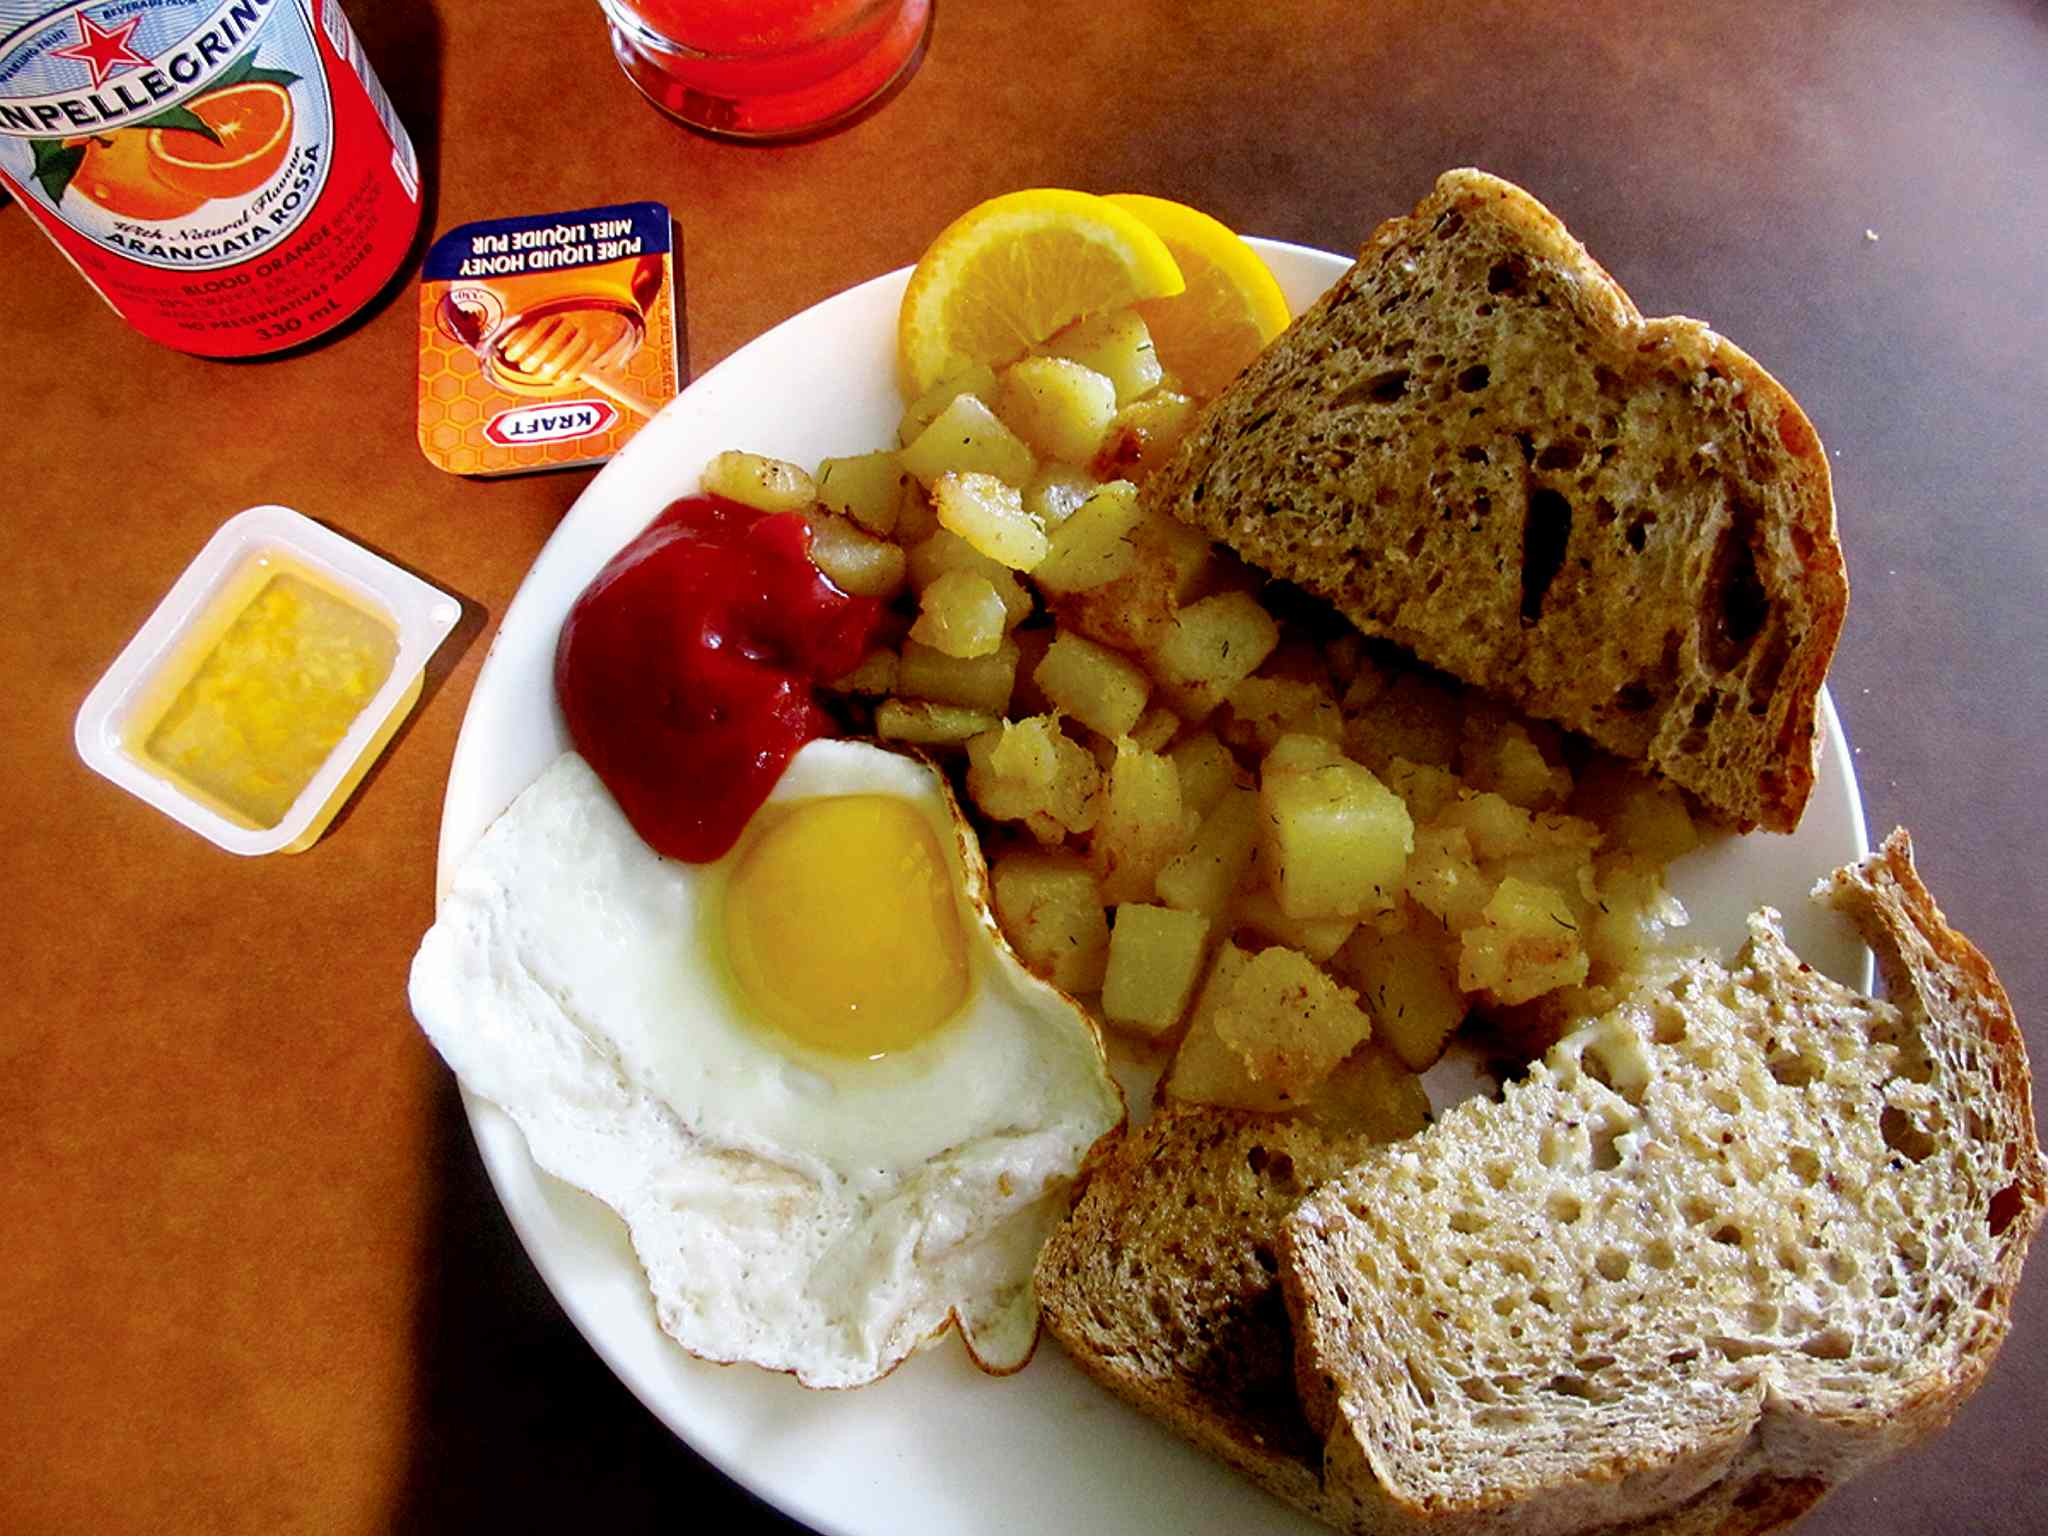 The 'small start' breakfast at L'Arche Tova Cafe is a lovely way to begin the day.